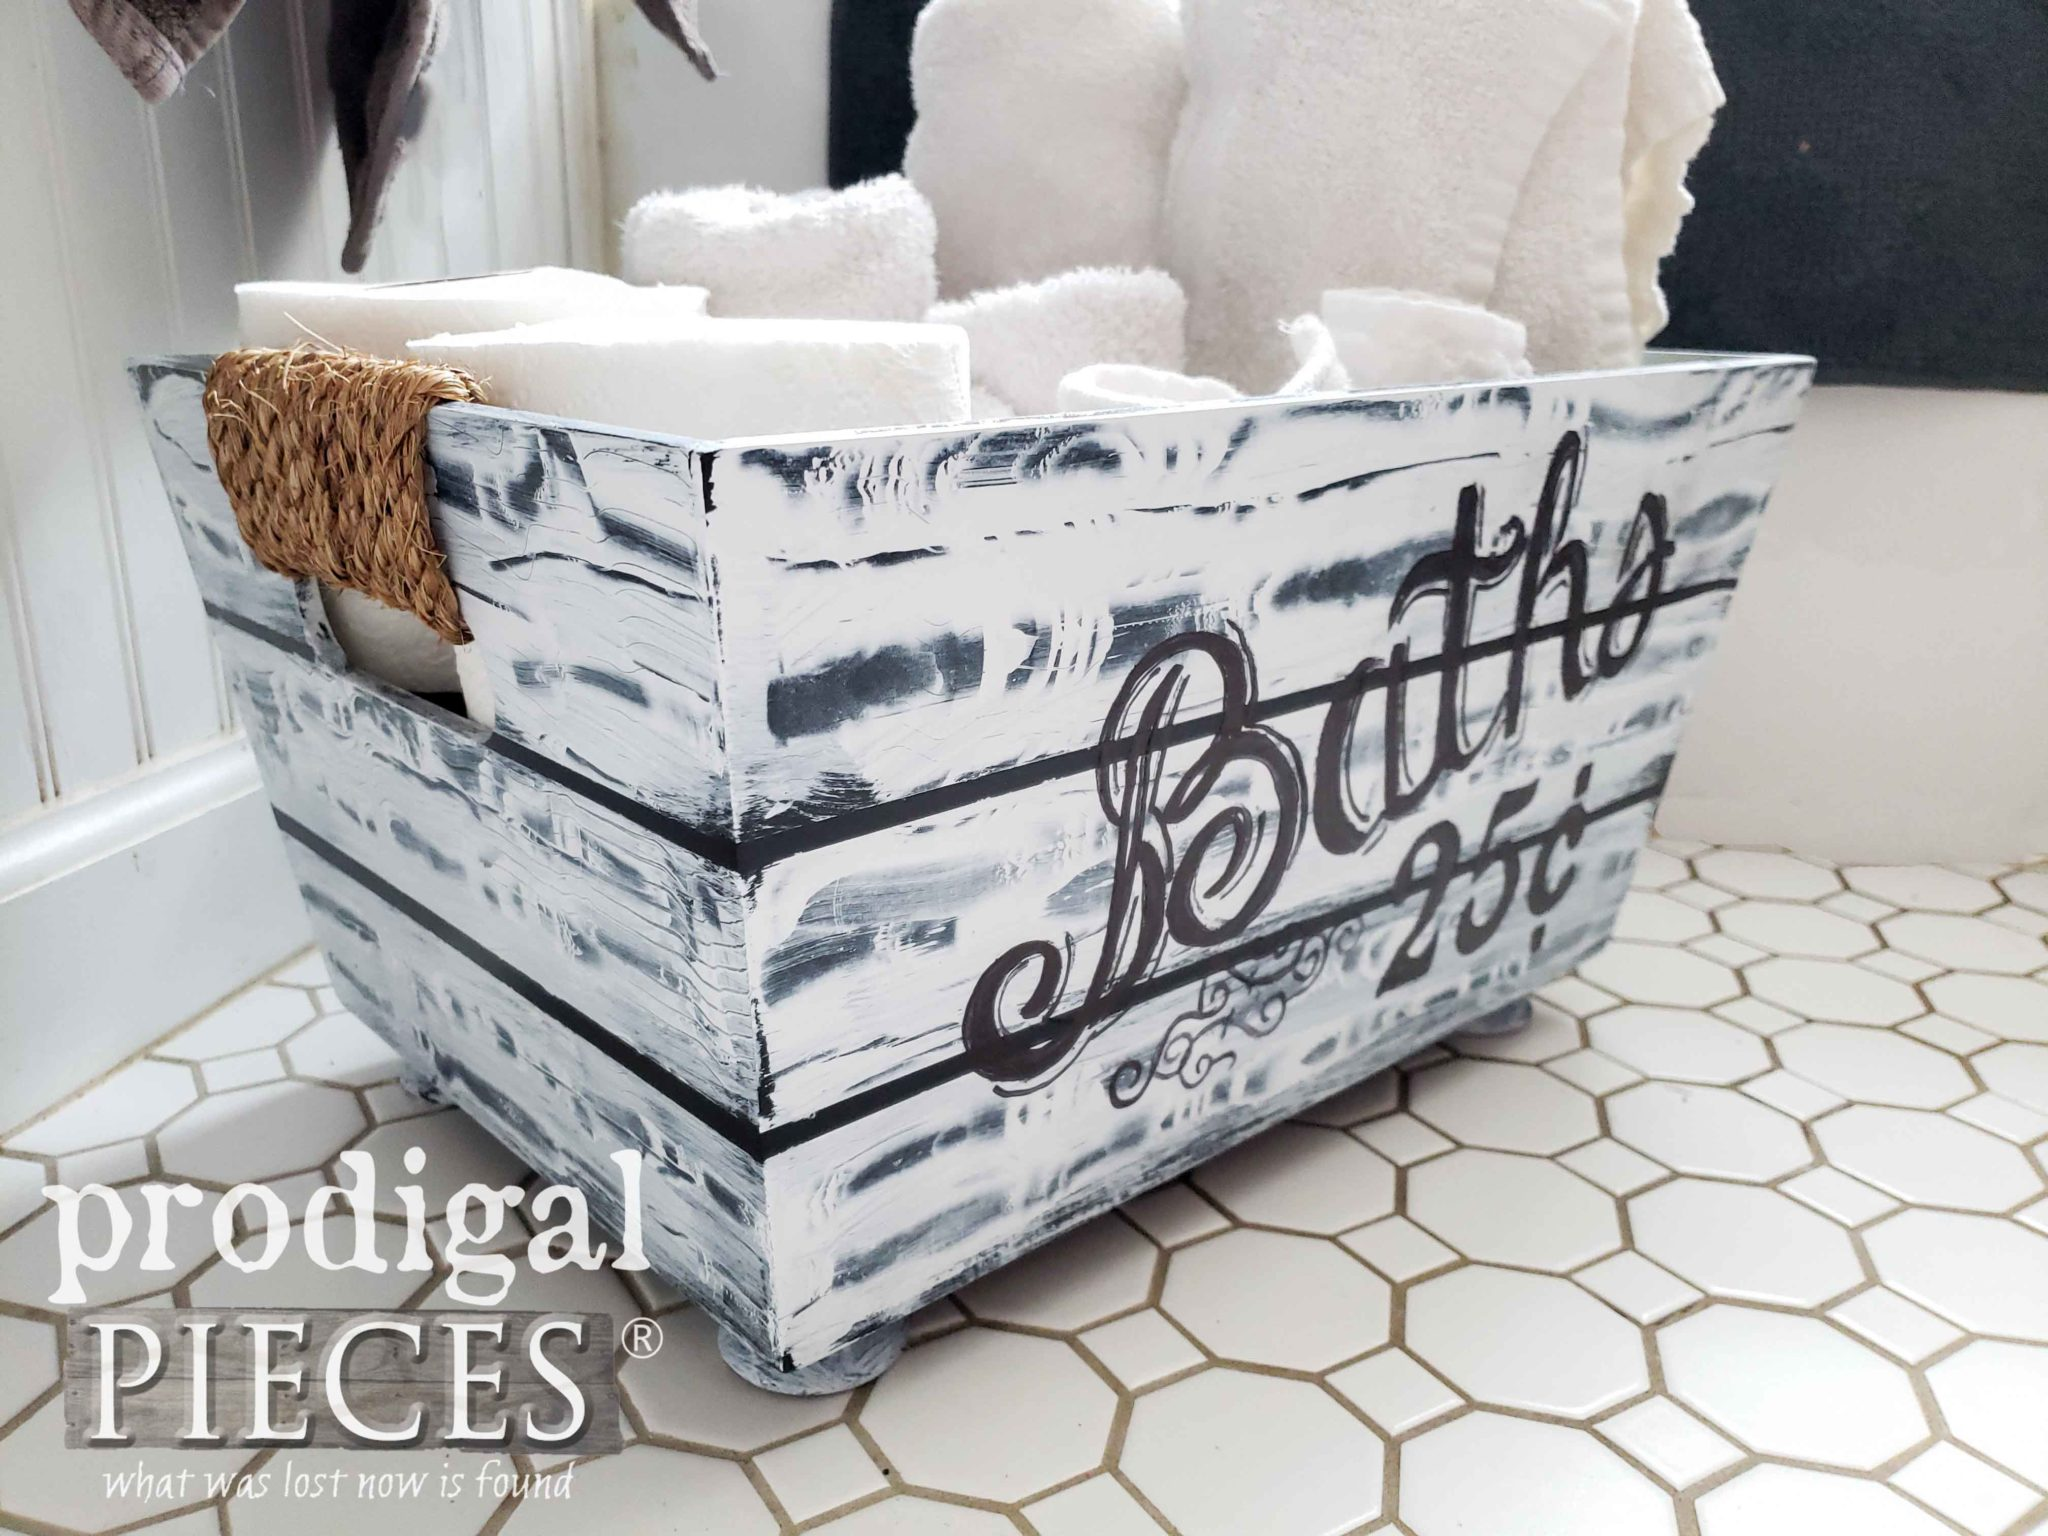 Sisal Rope Handled Bin for Farmhouse Bathroom Decor by Prodigal Pieces | prodigalpieces.com #prodigalpieces #diy #handmade #farmhouse #home #homedecor #homedecorideas